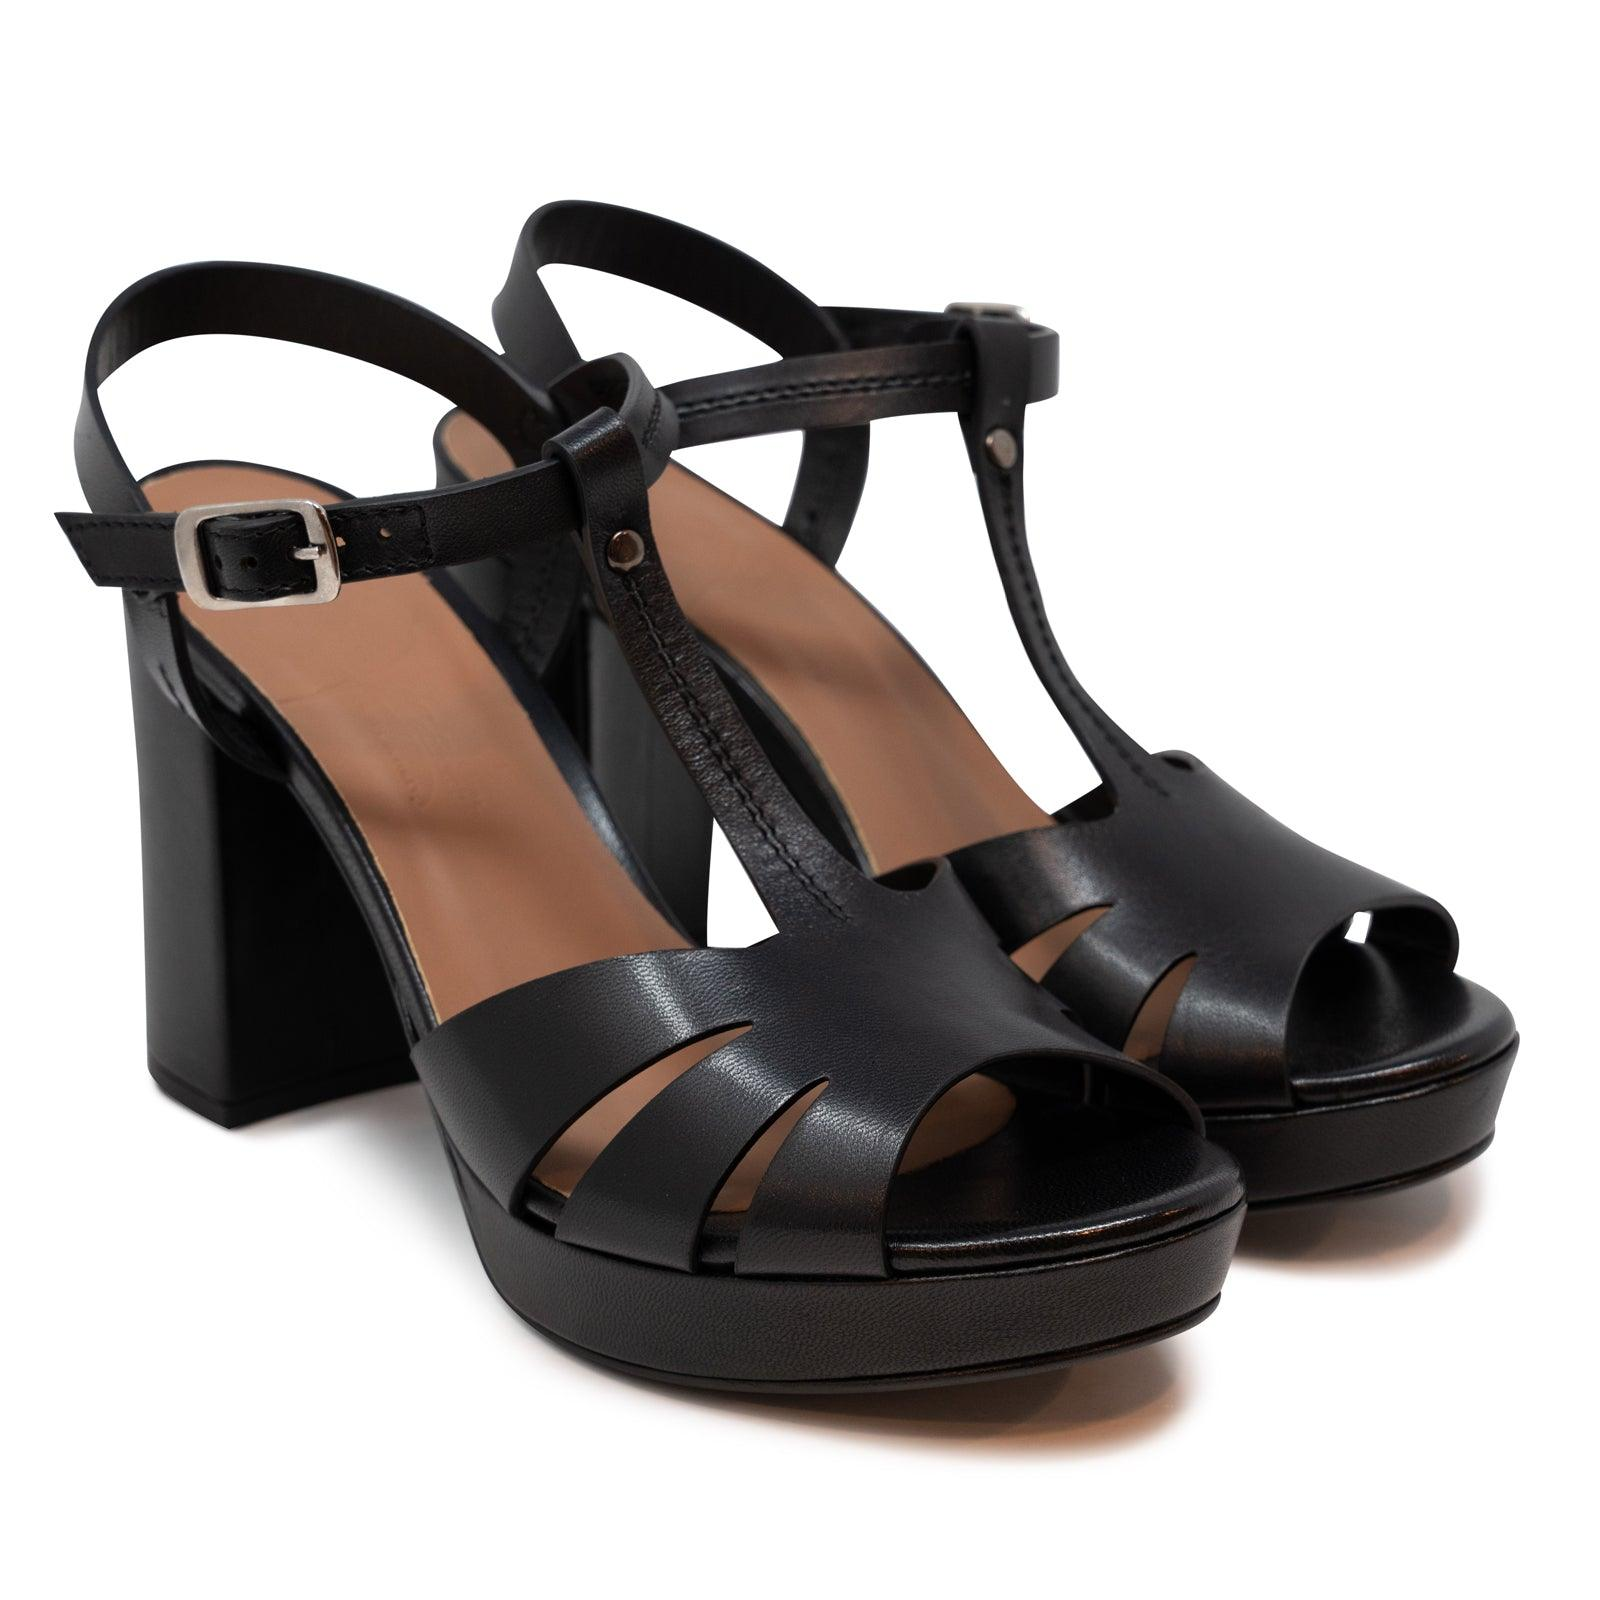 Women's Buffered Leather Platform Sandals in Black